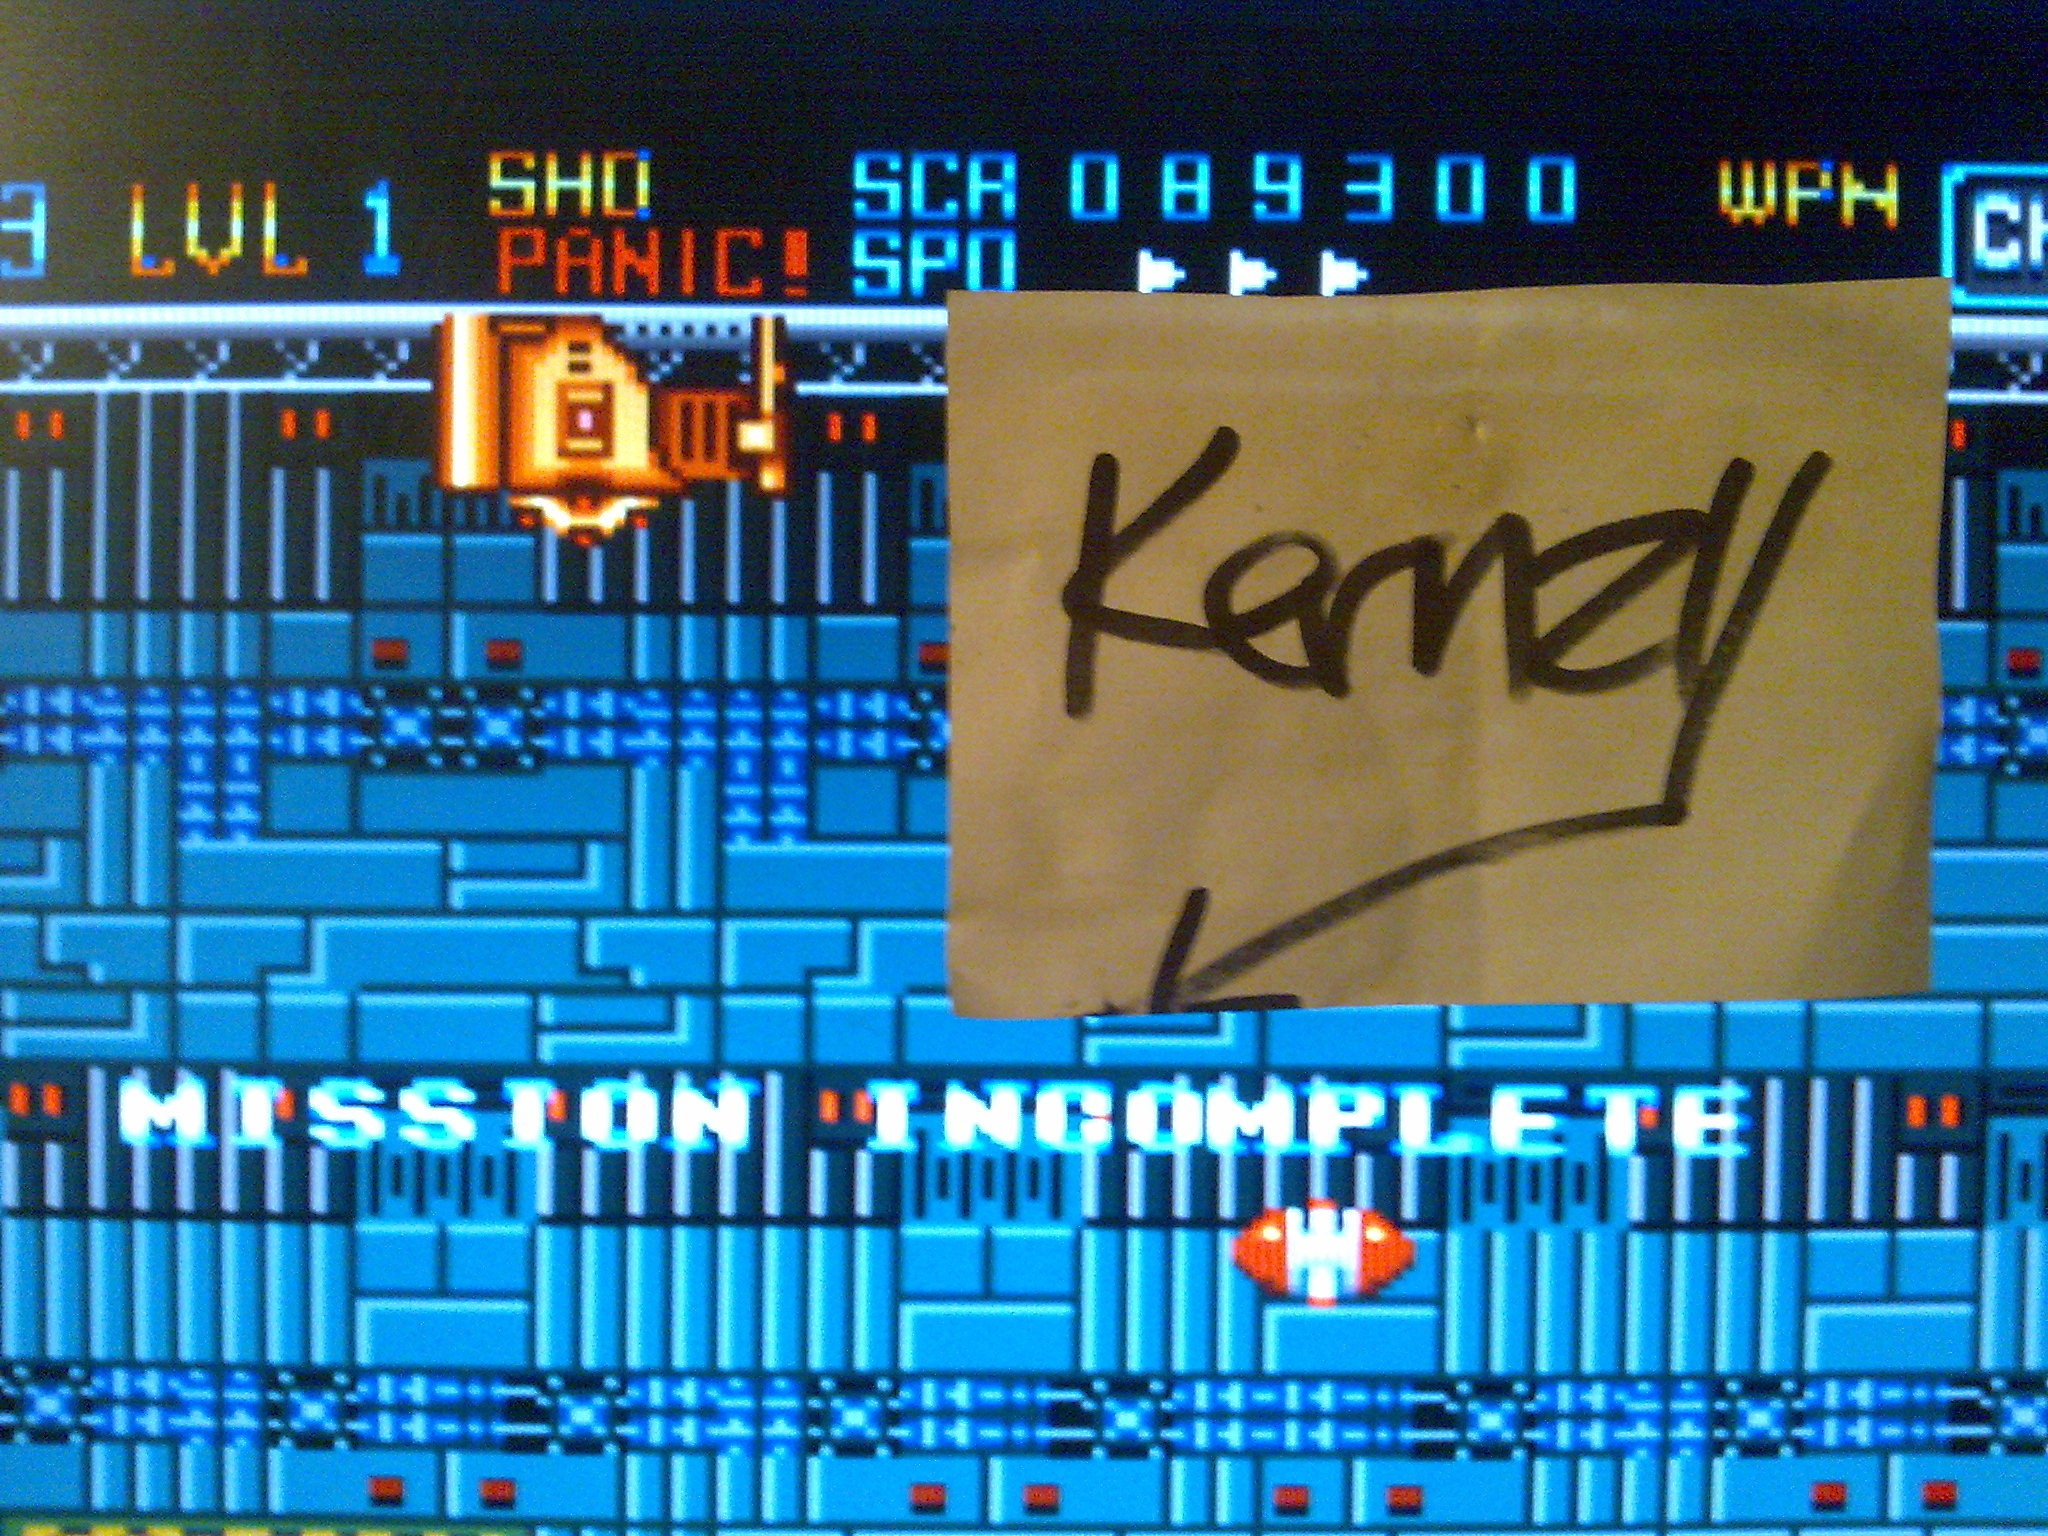 kernzy: Download (TurboGrafx-16/PC Engine Emulated) 89,300 points on 2014-10-11 13:02:56